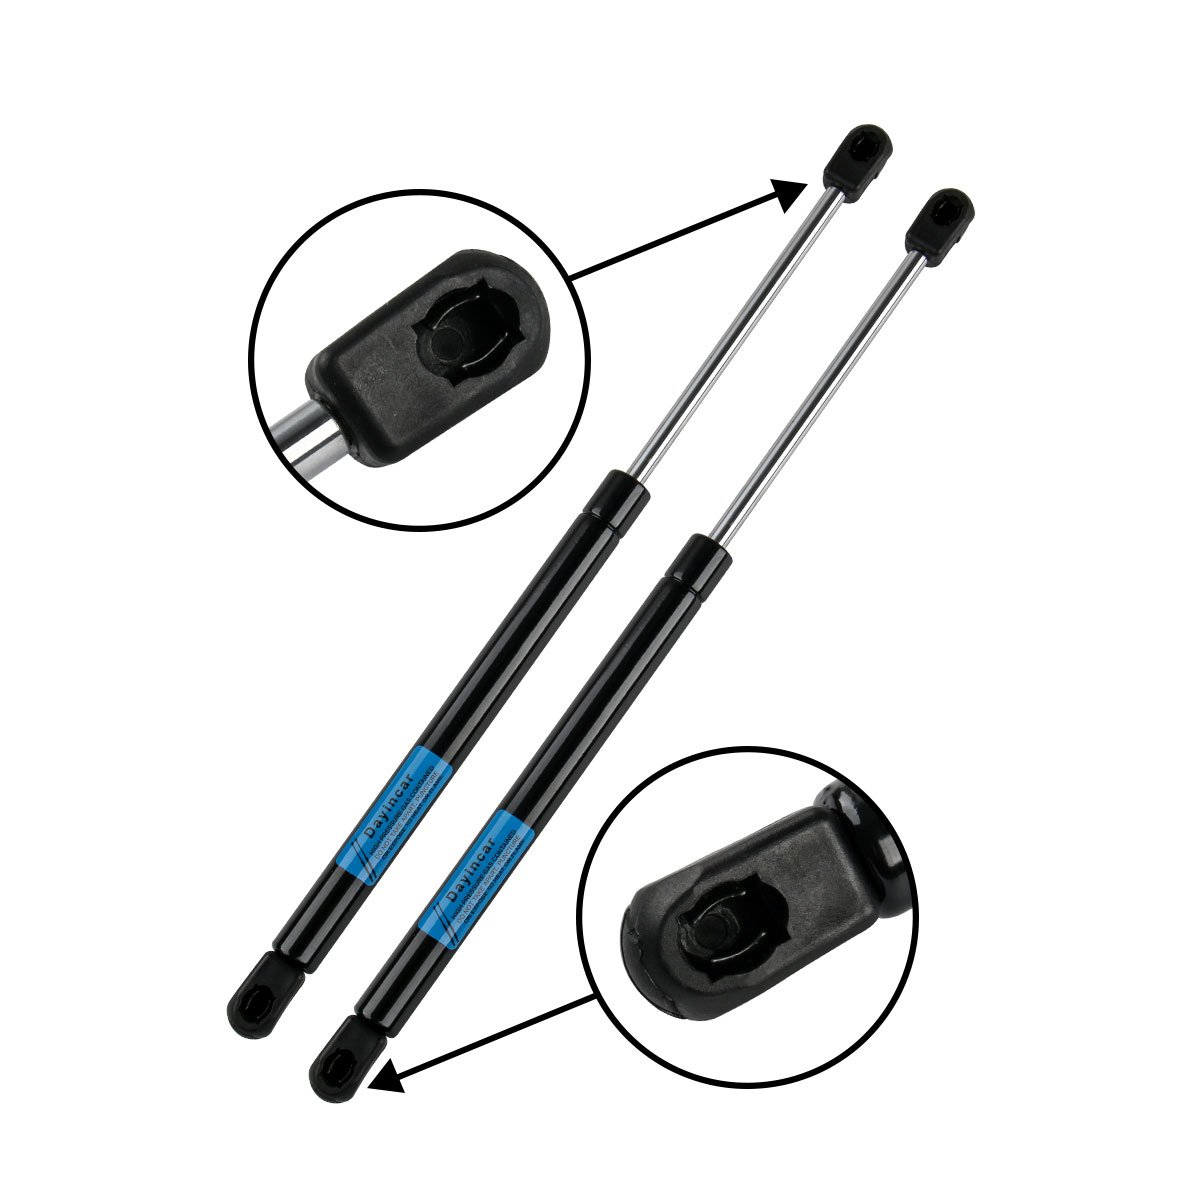 Qty (2) 6489 Front Hood Gas Lift Supports Struts Shocks Dampers for 2011 2012 2013 Hyundai Sonata SG367017 81161-3Q000 (Excluding Hybrid) Dayincar Auto Parts